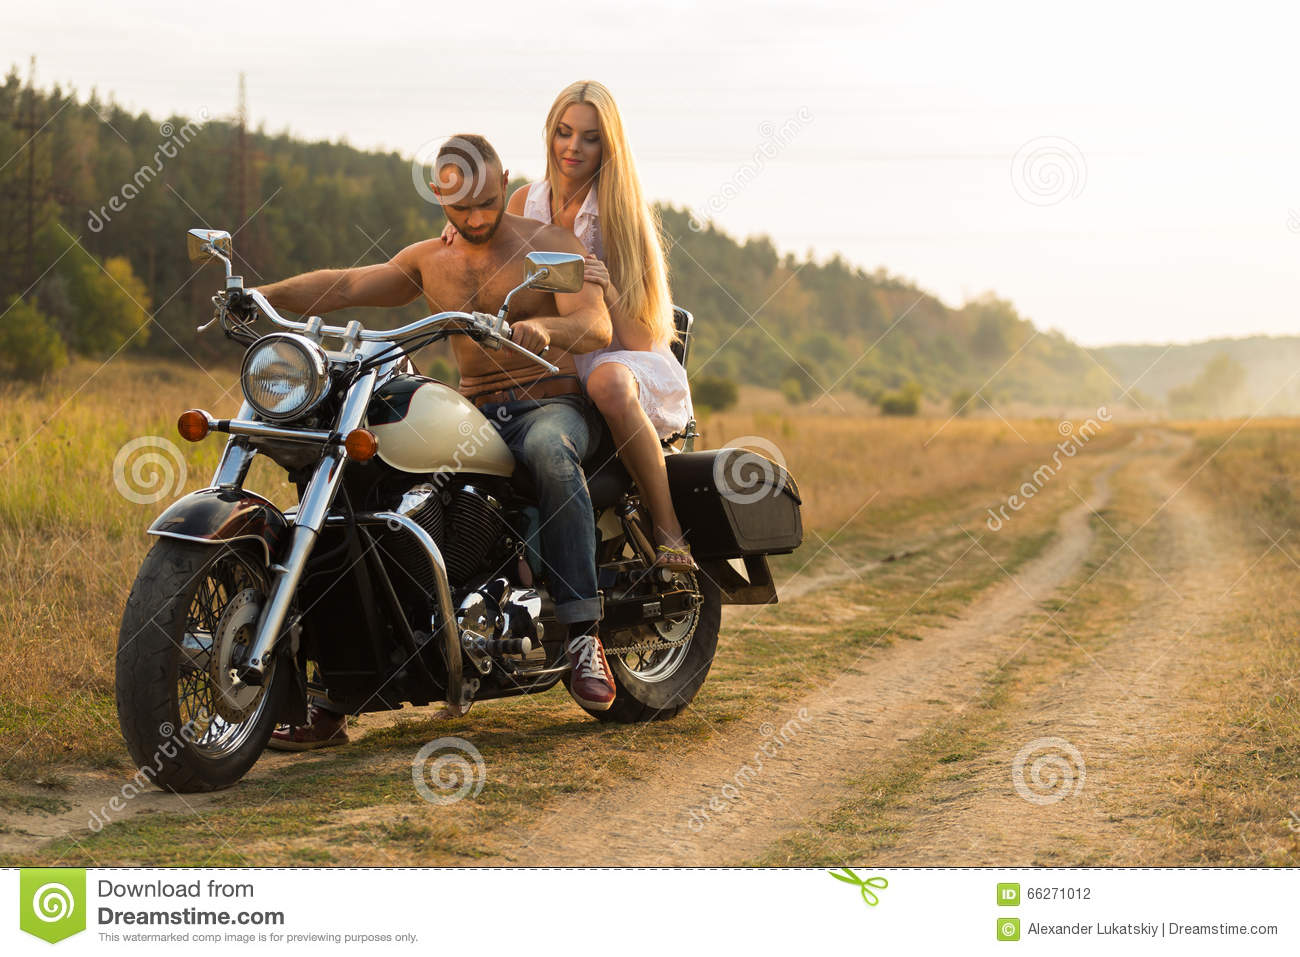 motorcycle love pics  A Young Couple In Love On A Motorcycle In The Field Stock Photo ...